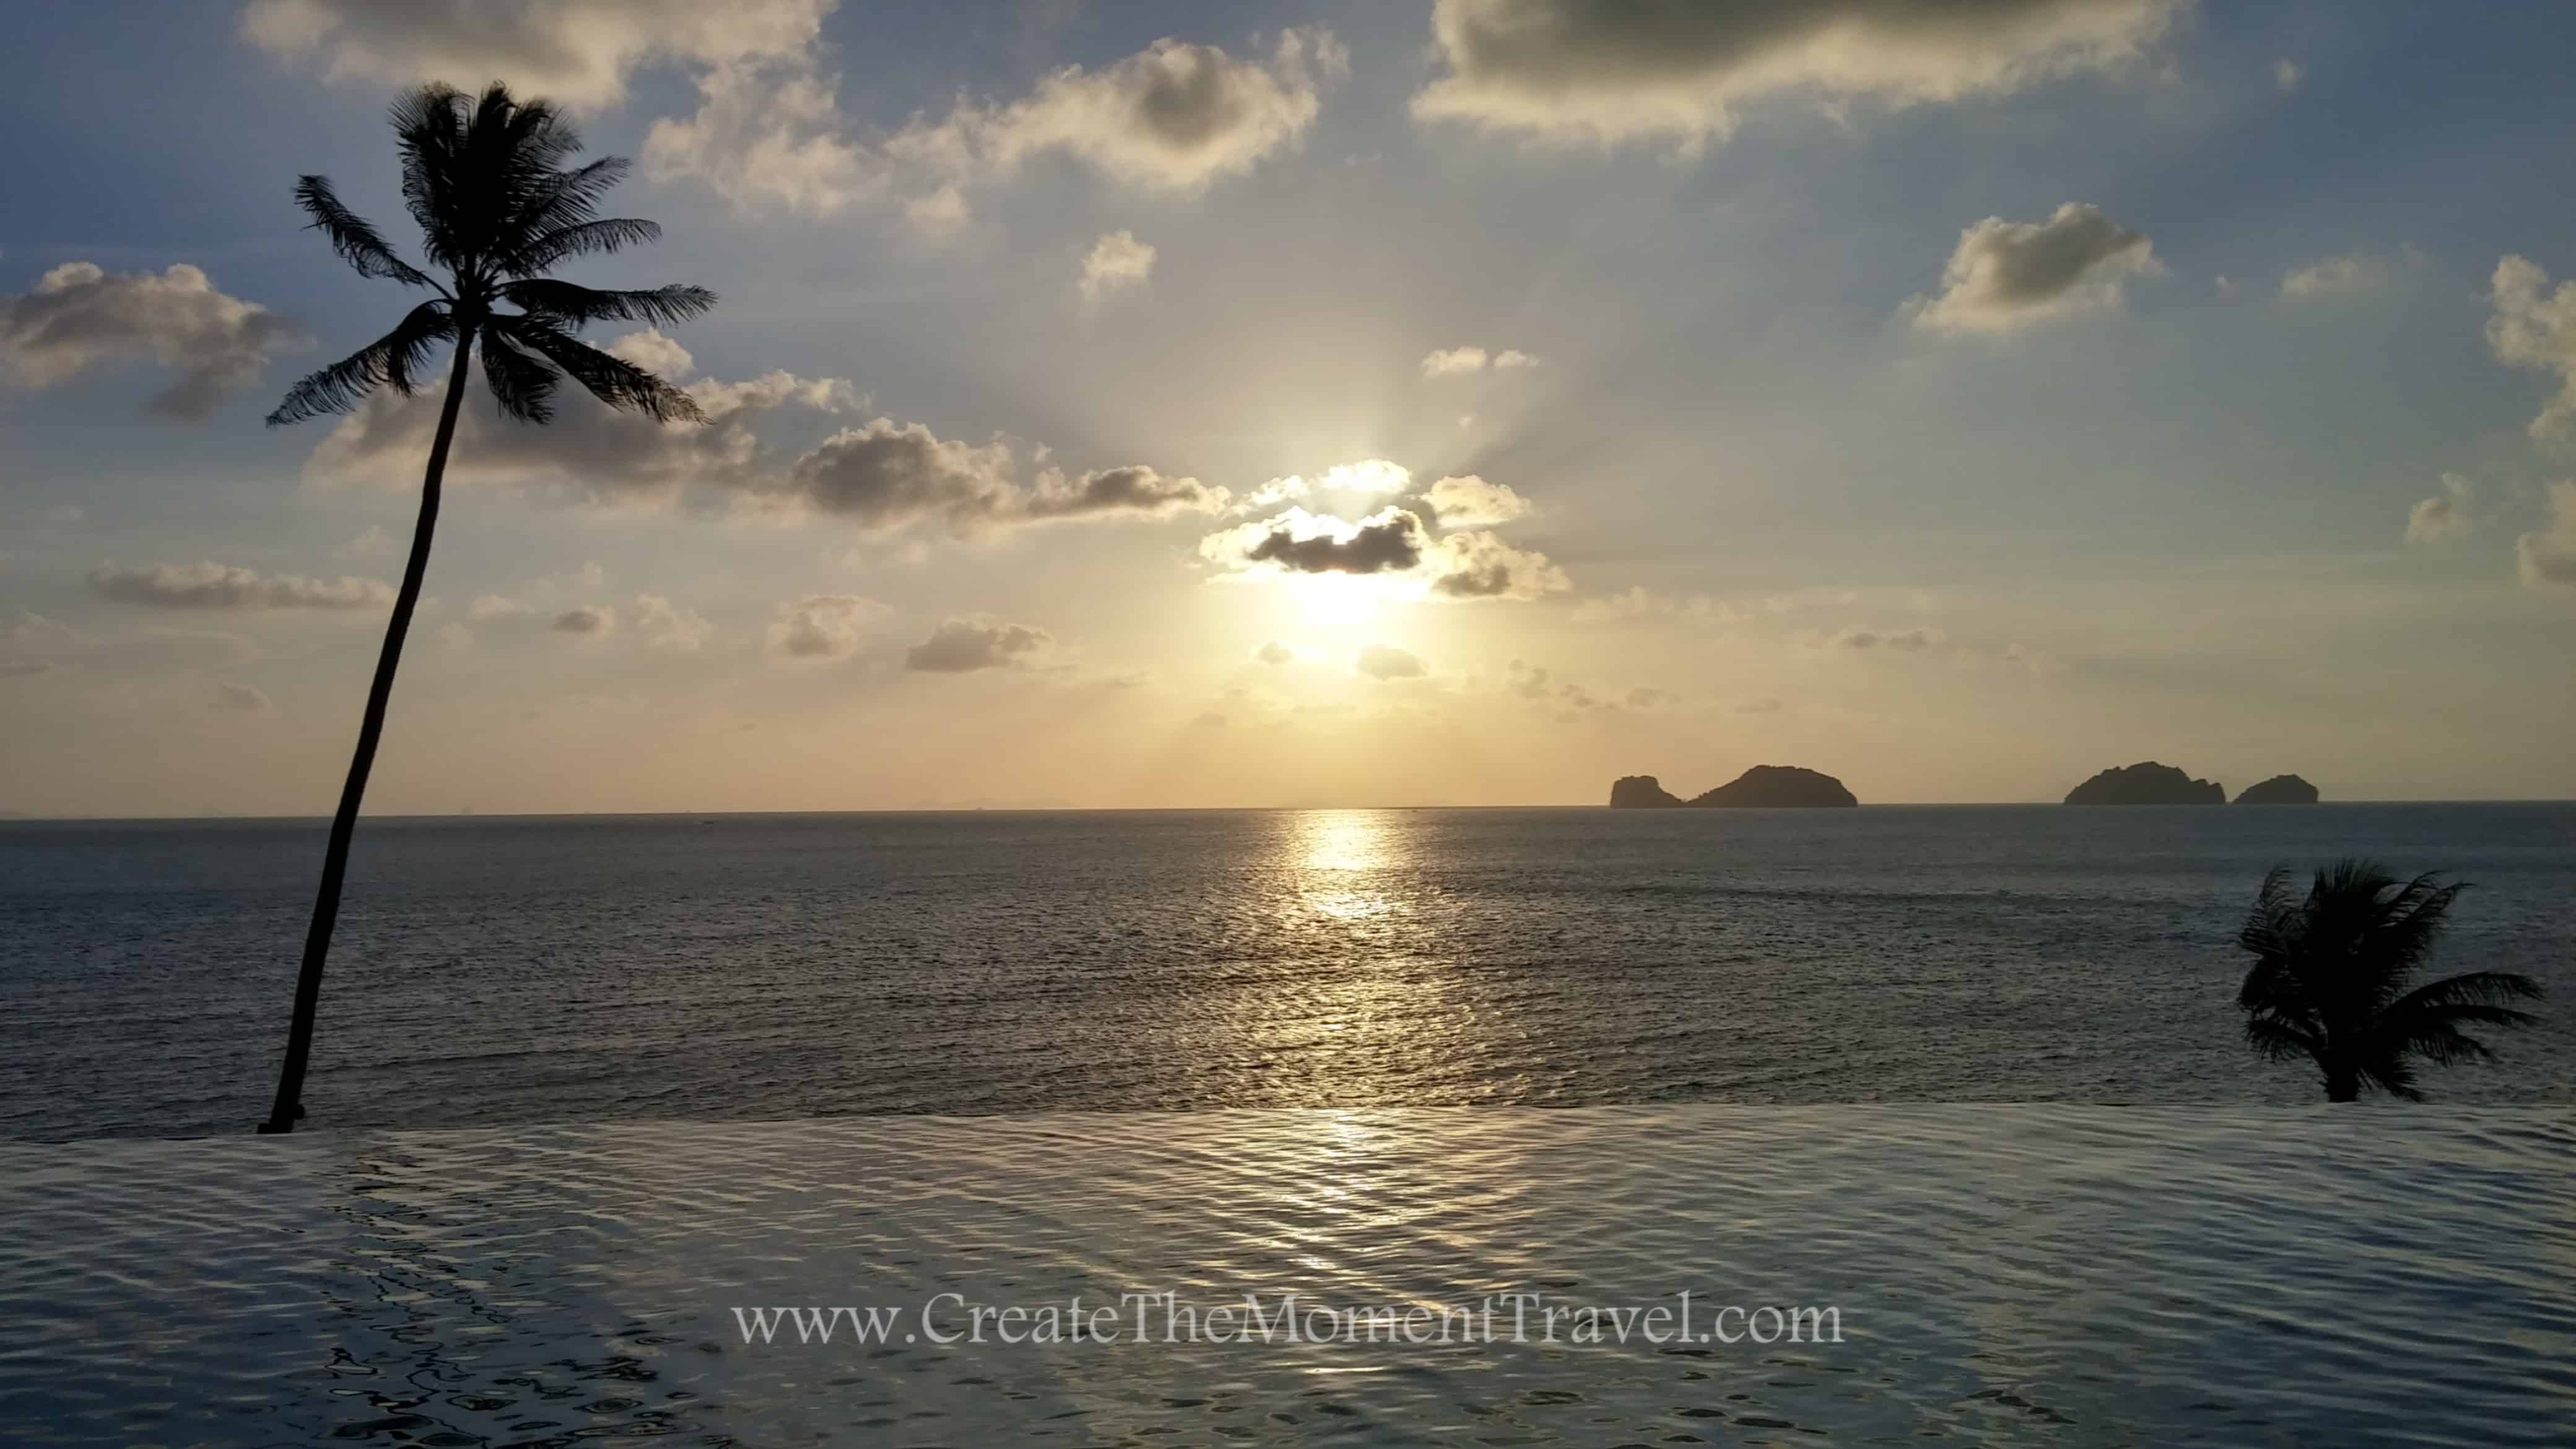 Sunset from Koh Samui Thailand by Create The Moment Travel